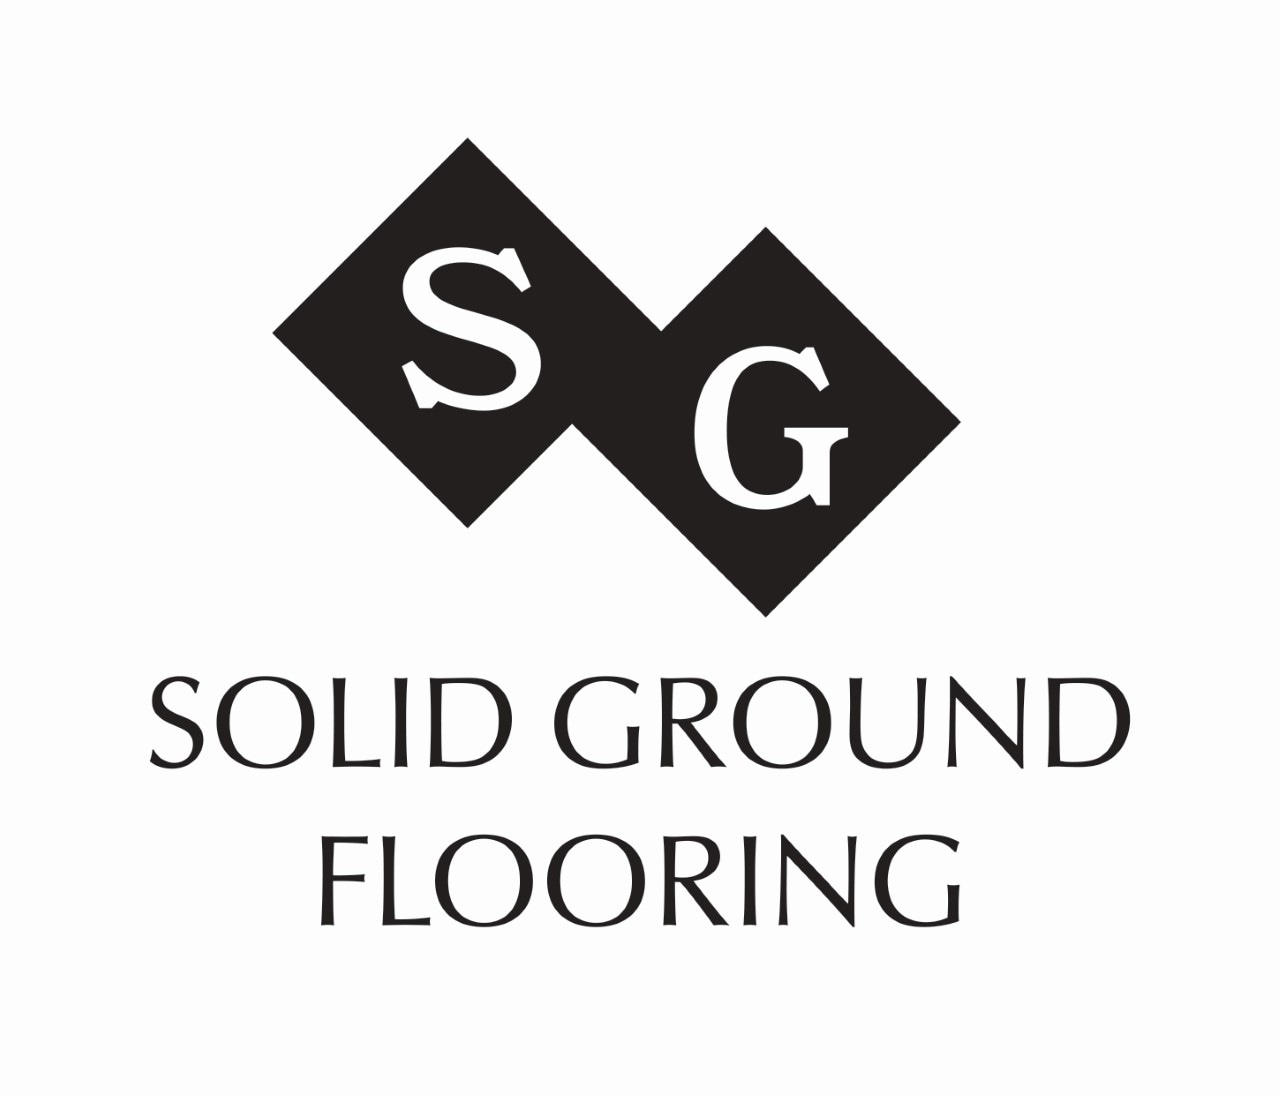 Solid Ground Flooring